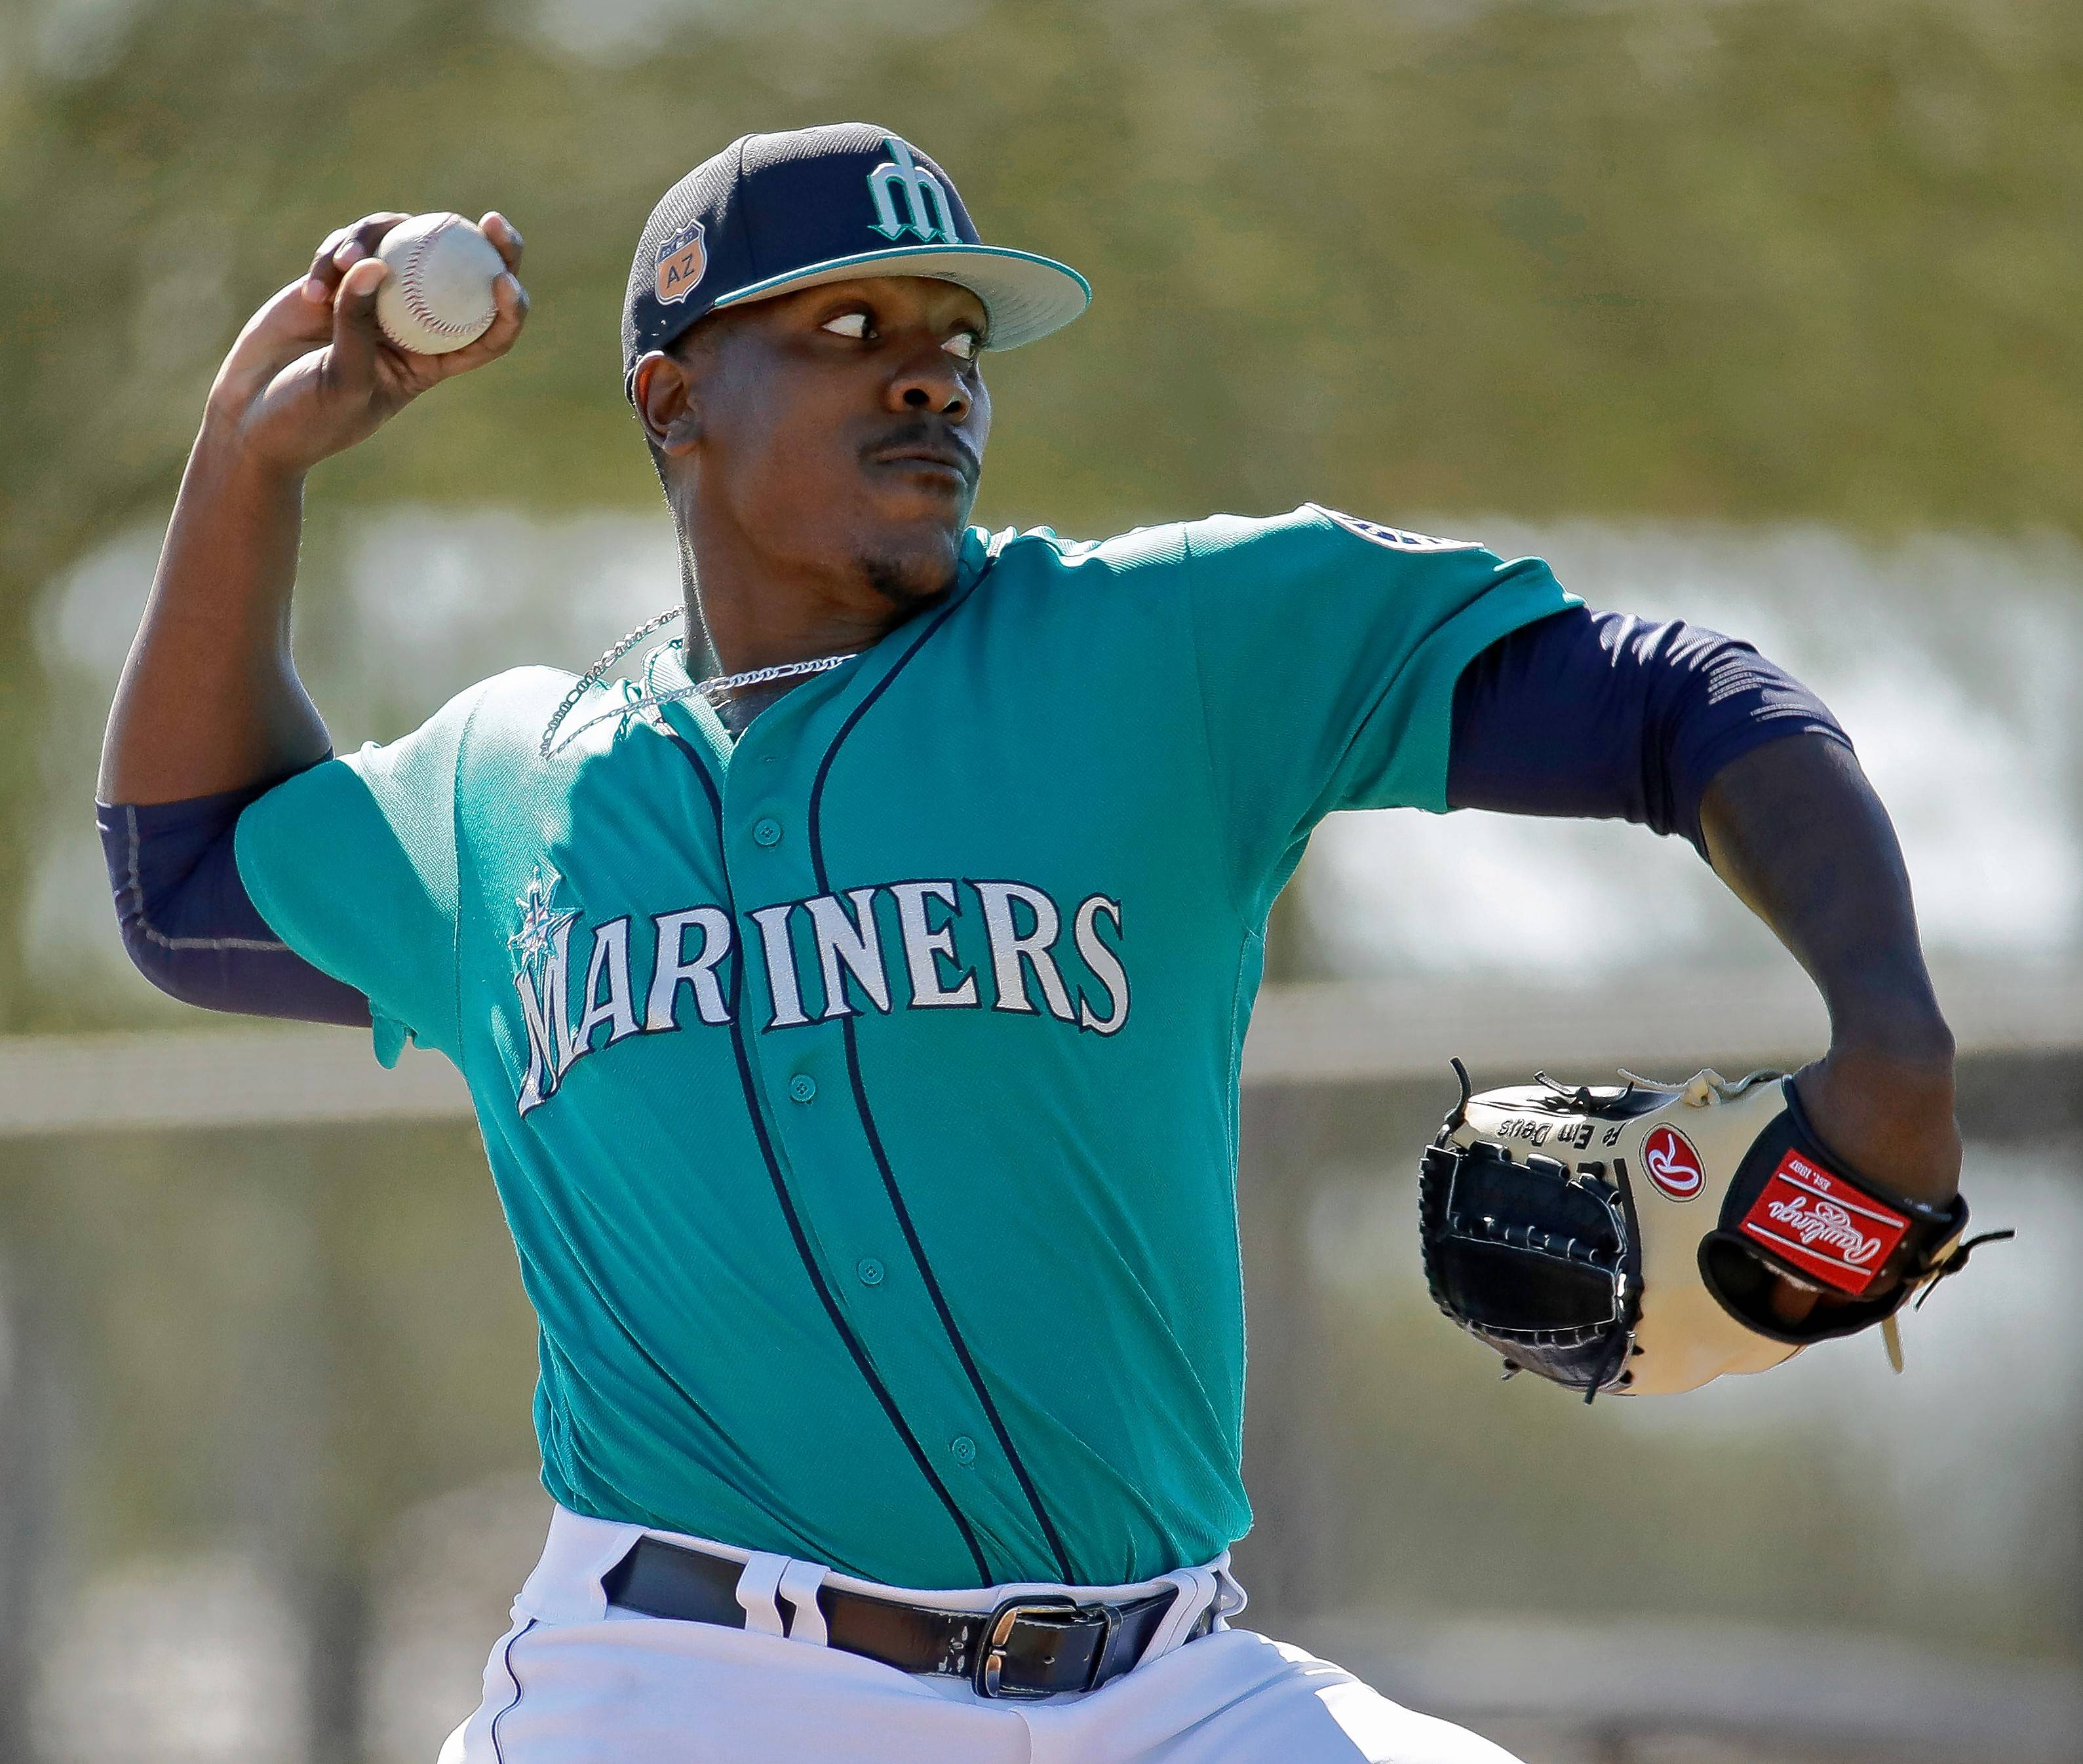 Relief pitcher Thyago Vieira made his major league debut with the Seattle Mariners last season. A native of Brazil, he was traded Thursday to the Chicago White Sox.